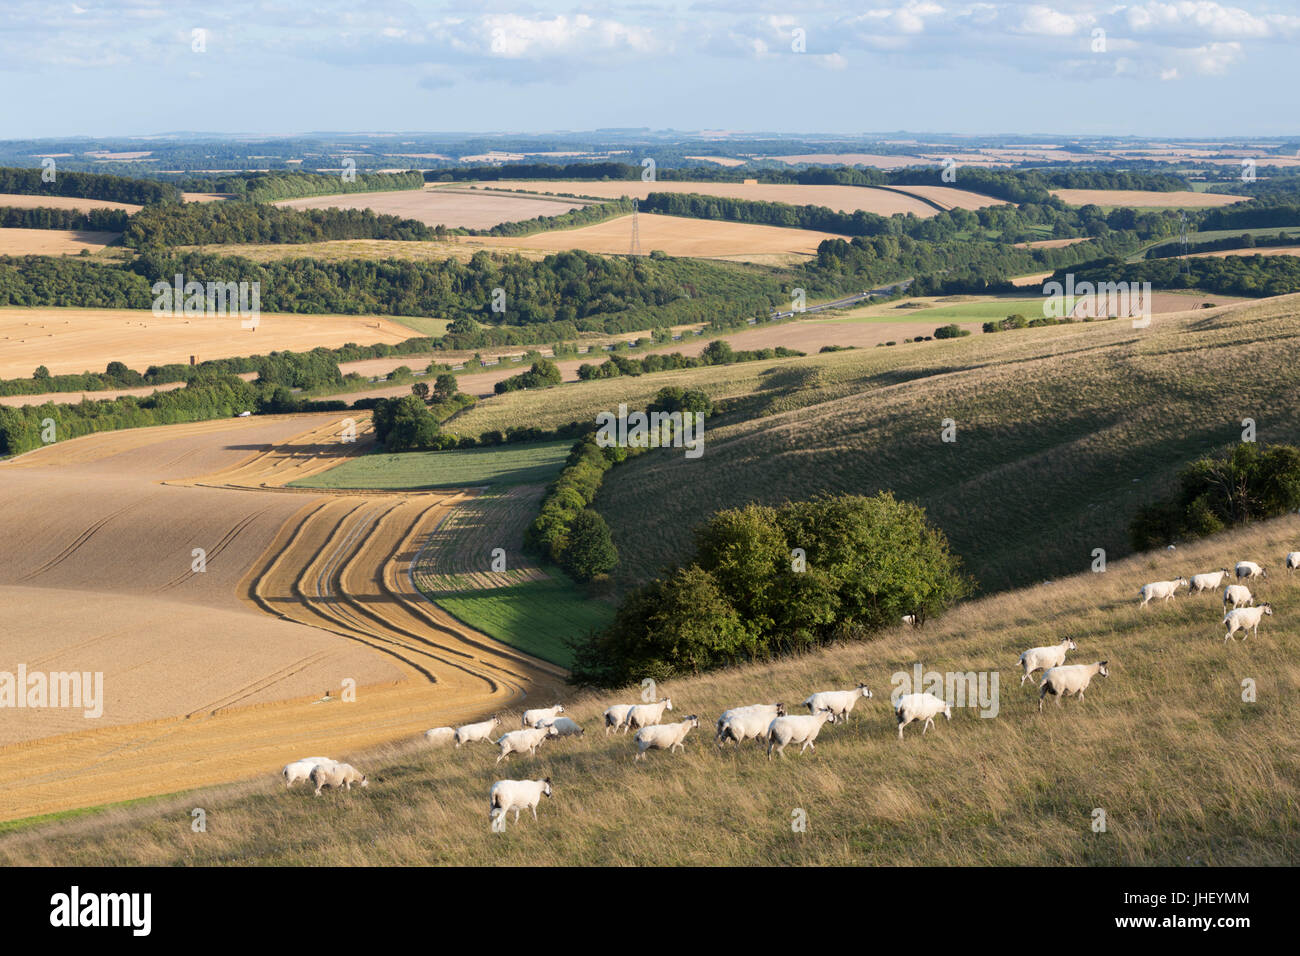 View over summer wheat fields and sheep from top of Beacon Hill, near Highclere, Hampshire, England, United Kingdom, - Stock Image